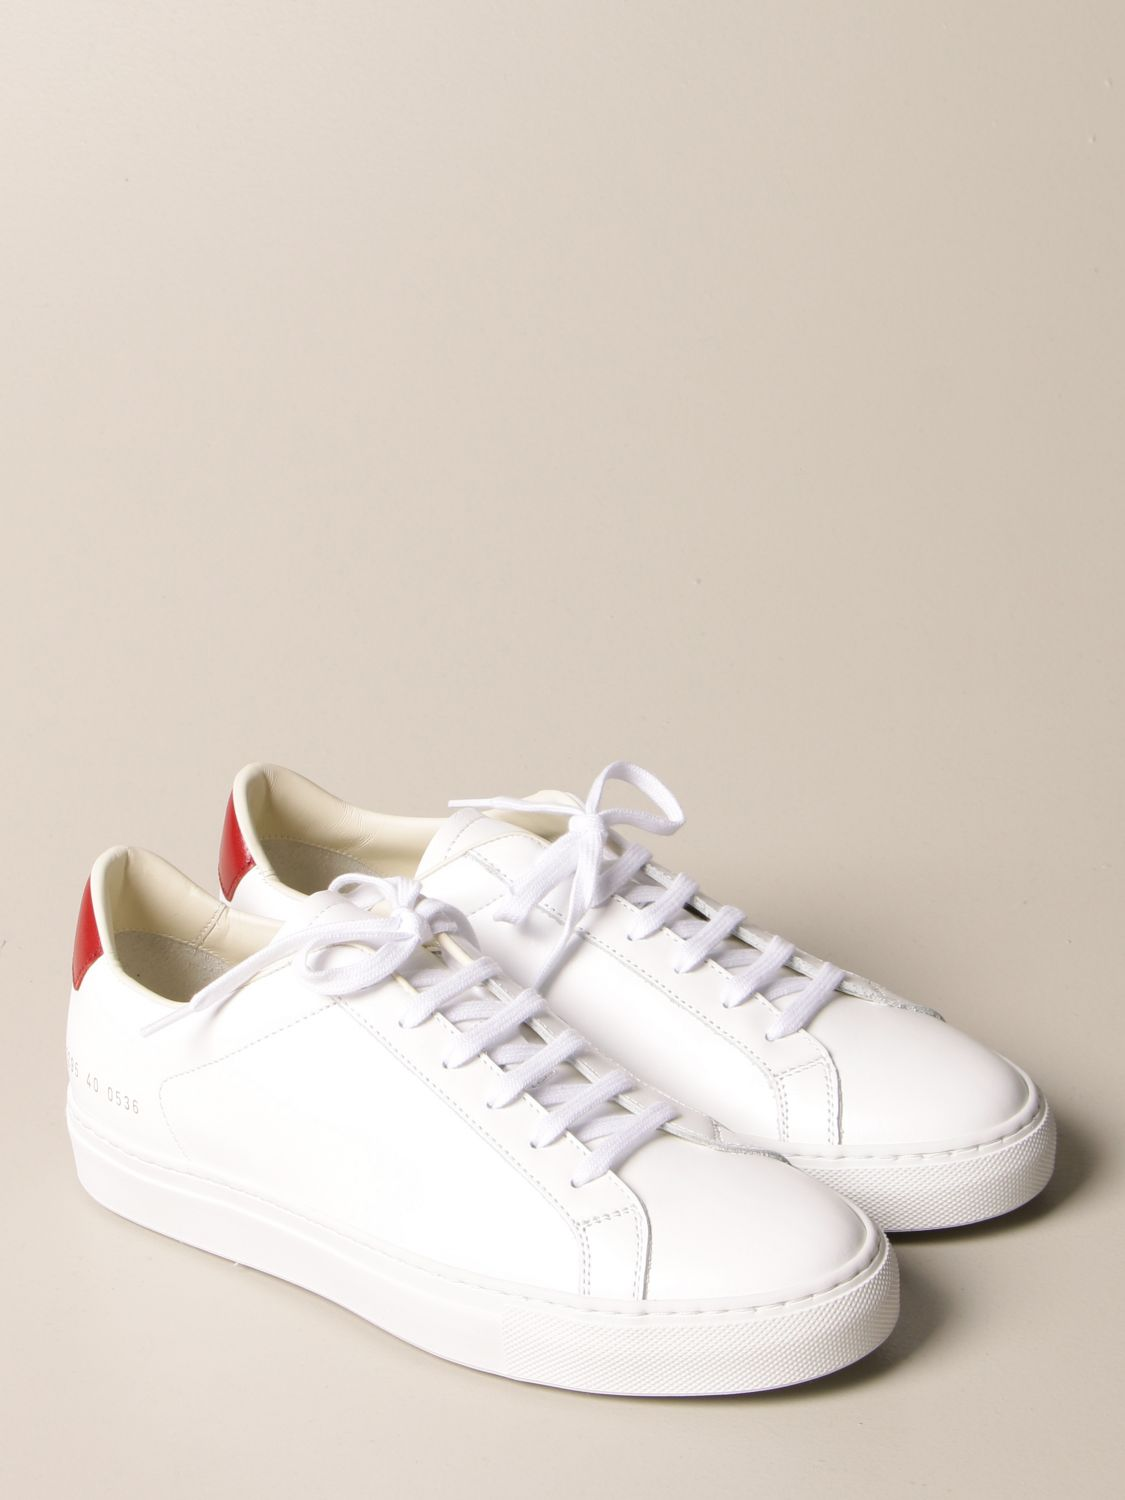 Sneakers Common Projects: Sneakers herren Common Projects weiss 2 2